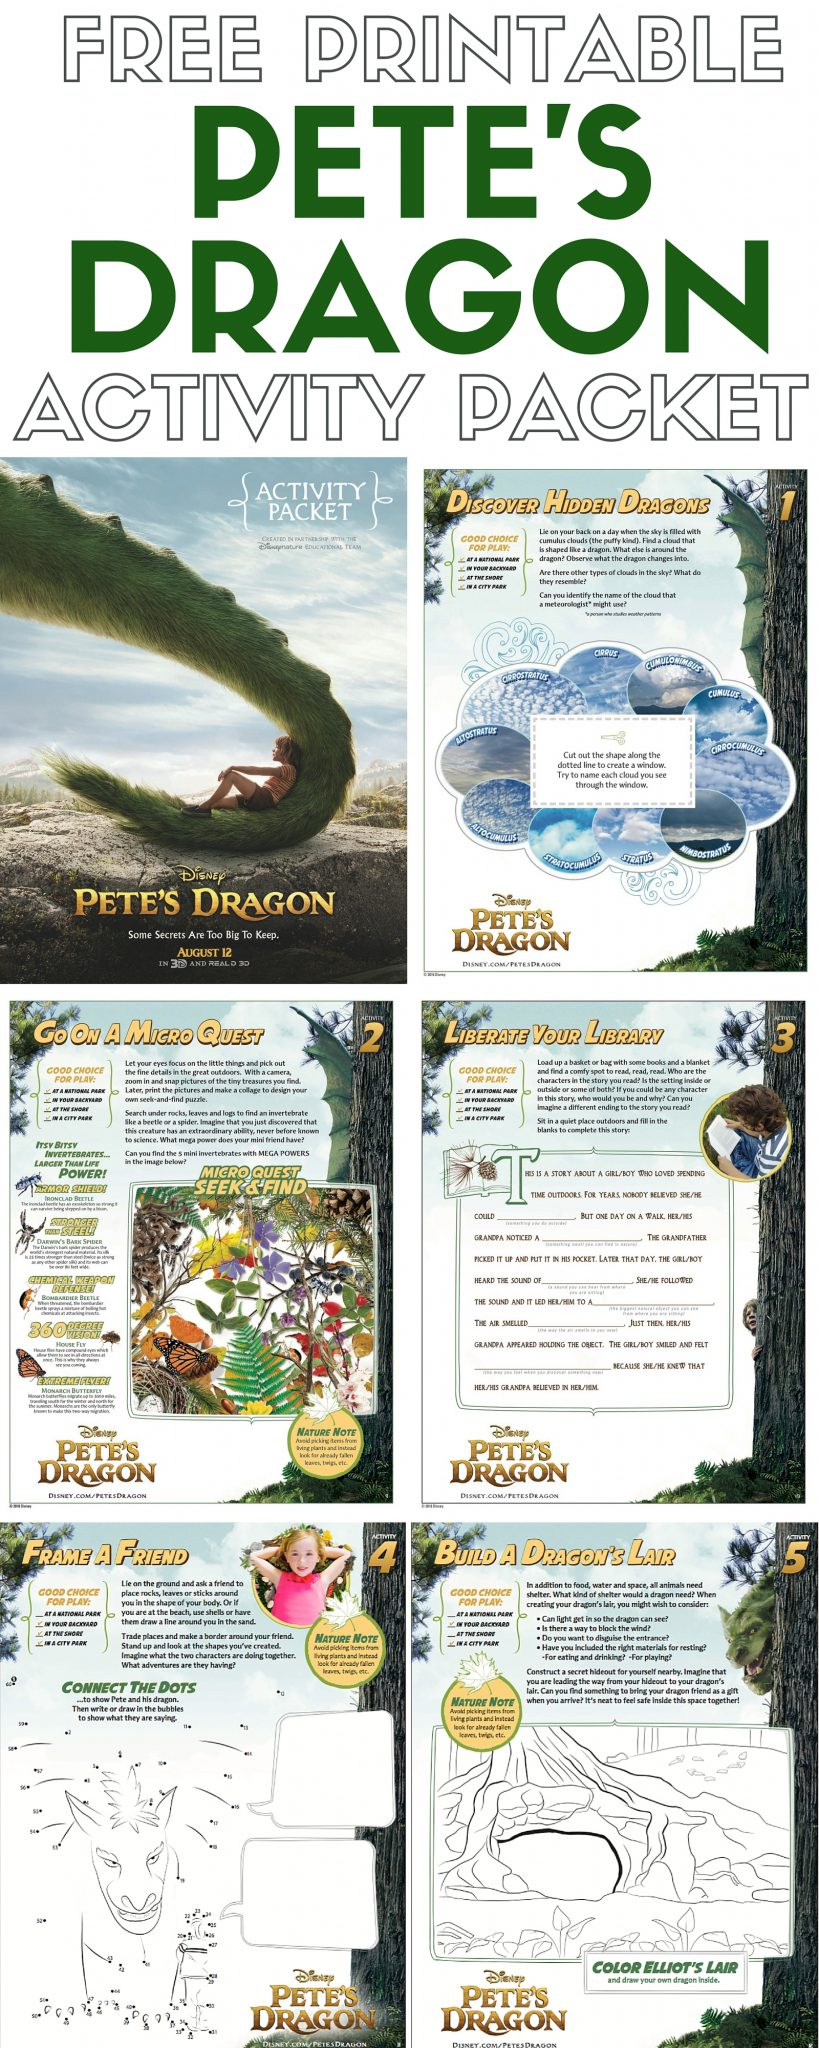 Download free printable activity sheets for Disney's Pete's Dragon and fall in love all over again!